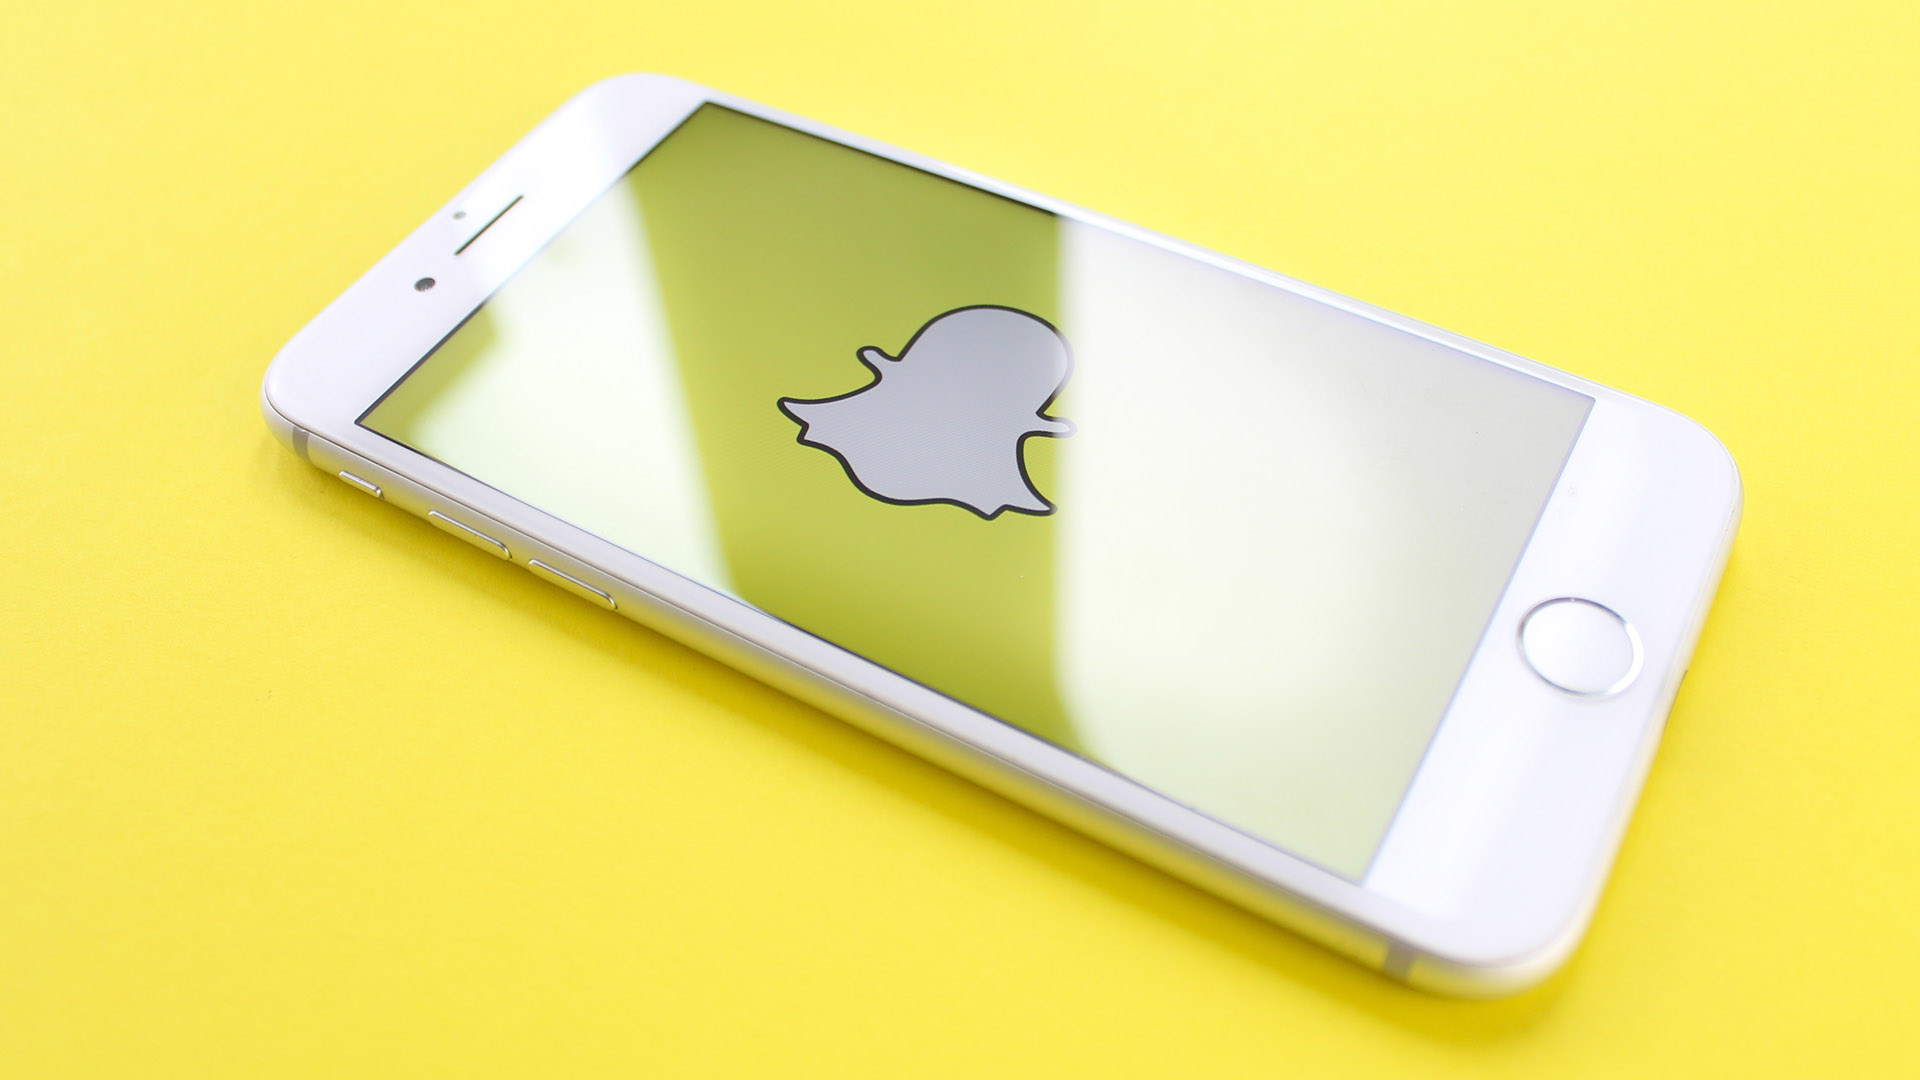 Snapchat Logo On Mobile Phone Screen